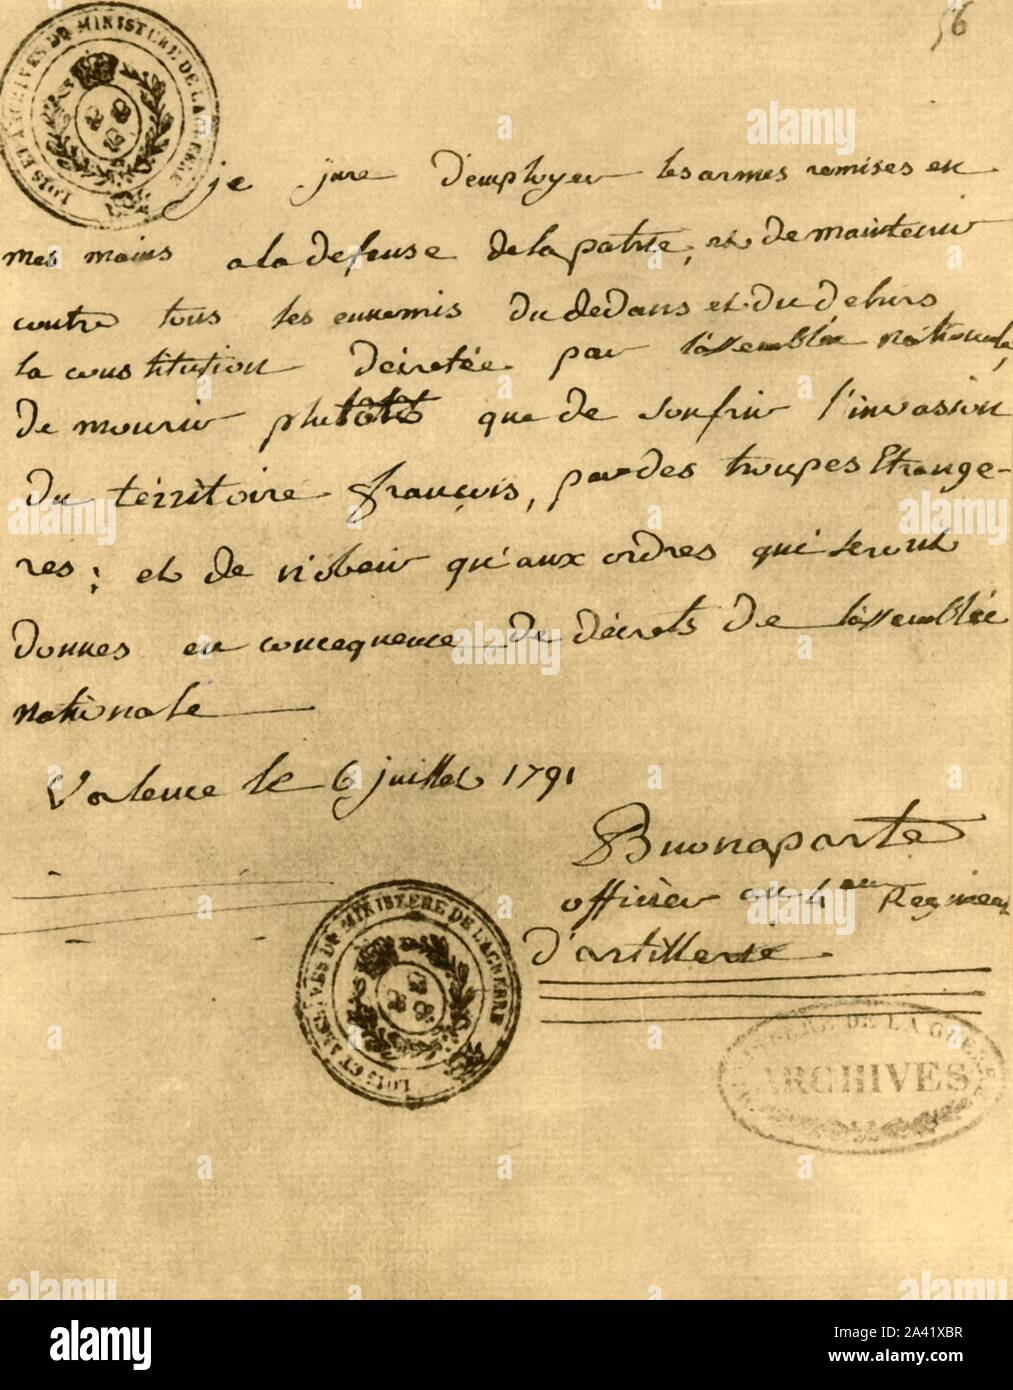 """Napoleon's constitutional oath, 6 July 1791, (1921). 'Serment de Bonaparte à la Constitution, 6 juillet 1791'. Oath signed by Napoleon Bonaparte (1769-1821), promising to be faithful to his country, the law and the king. Facsimile document from """"Napoleon"""", by Raymond Guyot. [H. Floury, Paris, 1921] Stock Photo"""